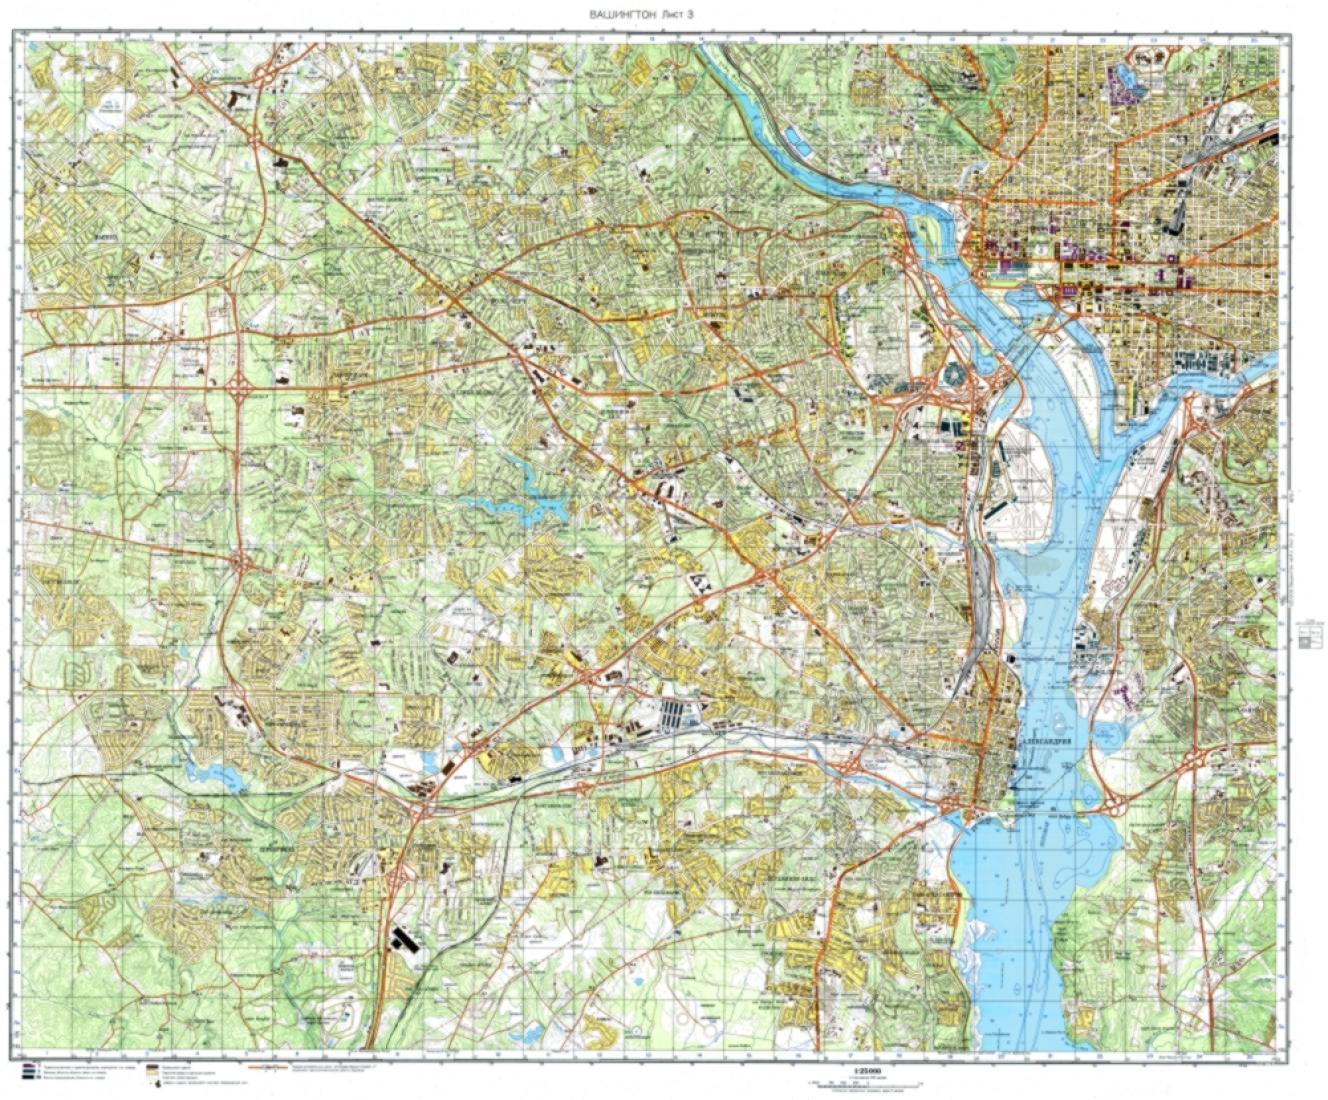 Washington Dc Cold War Map Sheet 3 Of 4 By Ussr